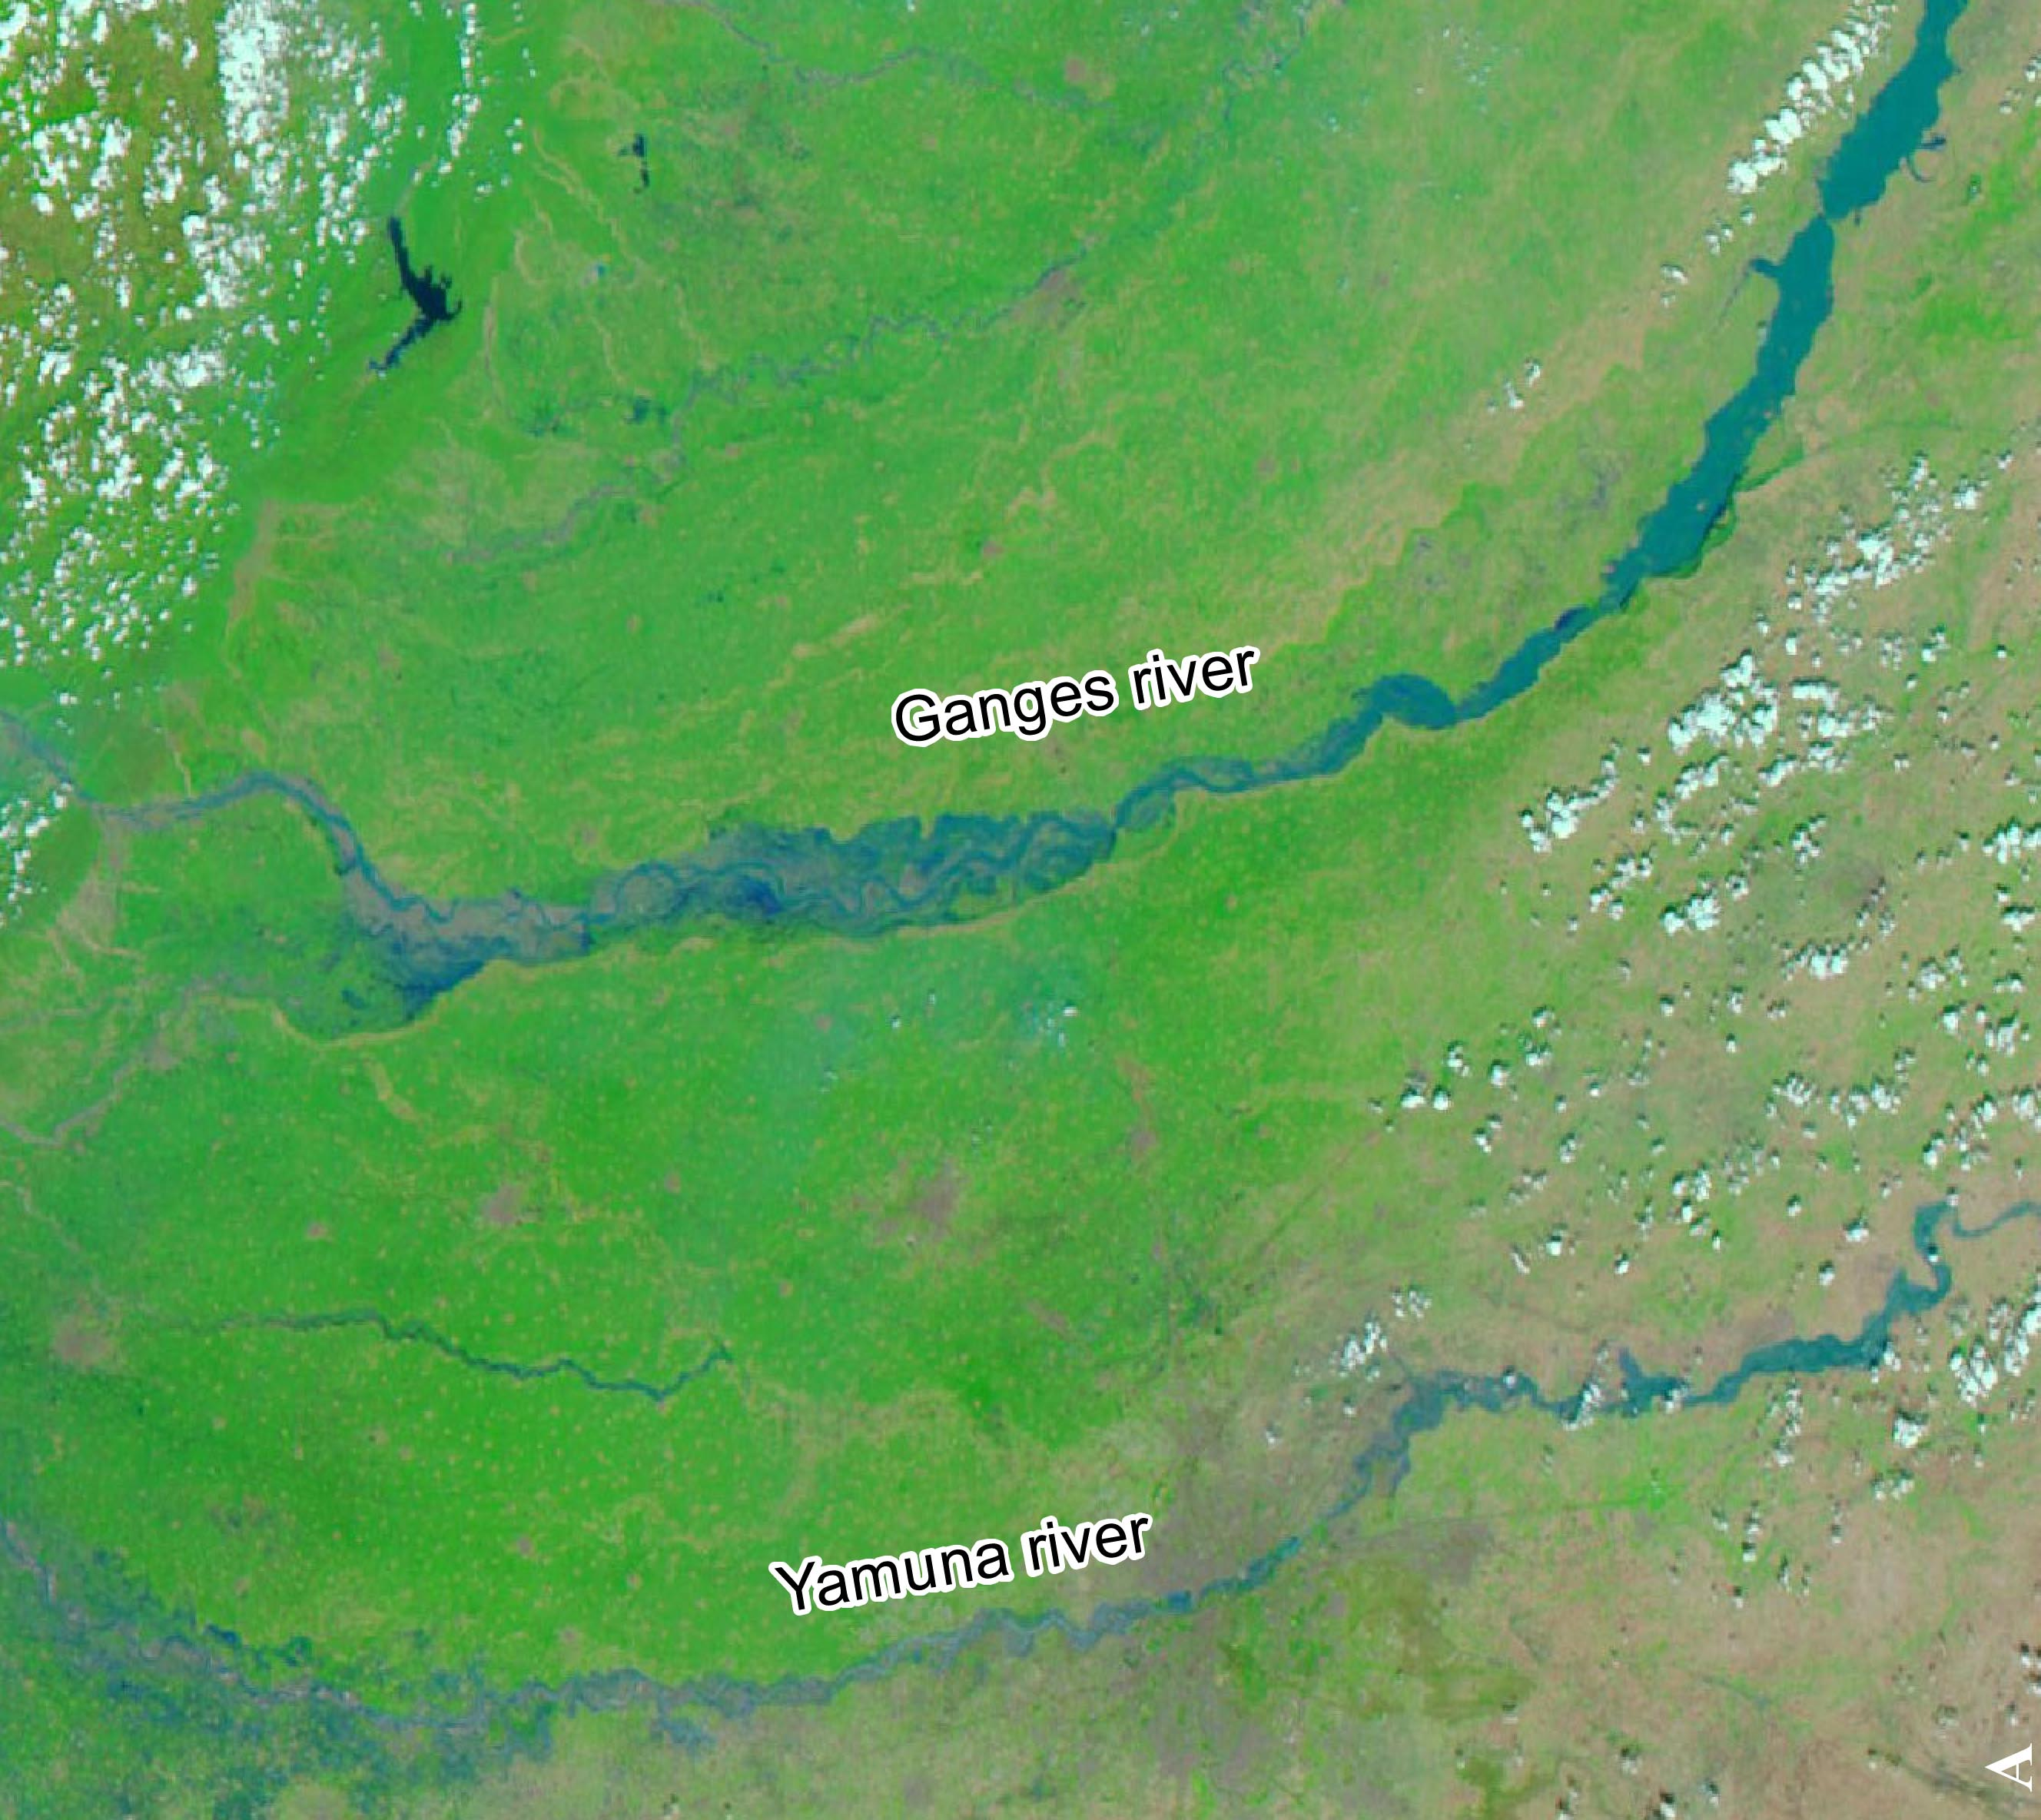 Ganges and Yamuna river seen from space by MODIS/Aqua on 21 June 2013